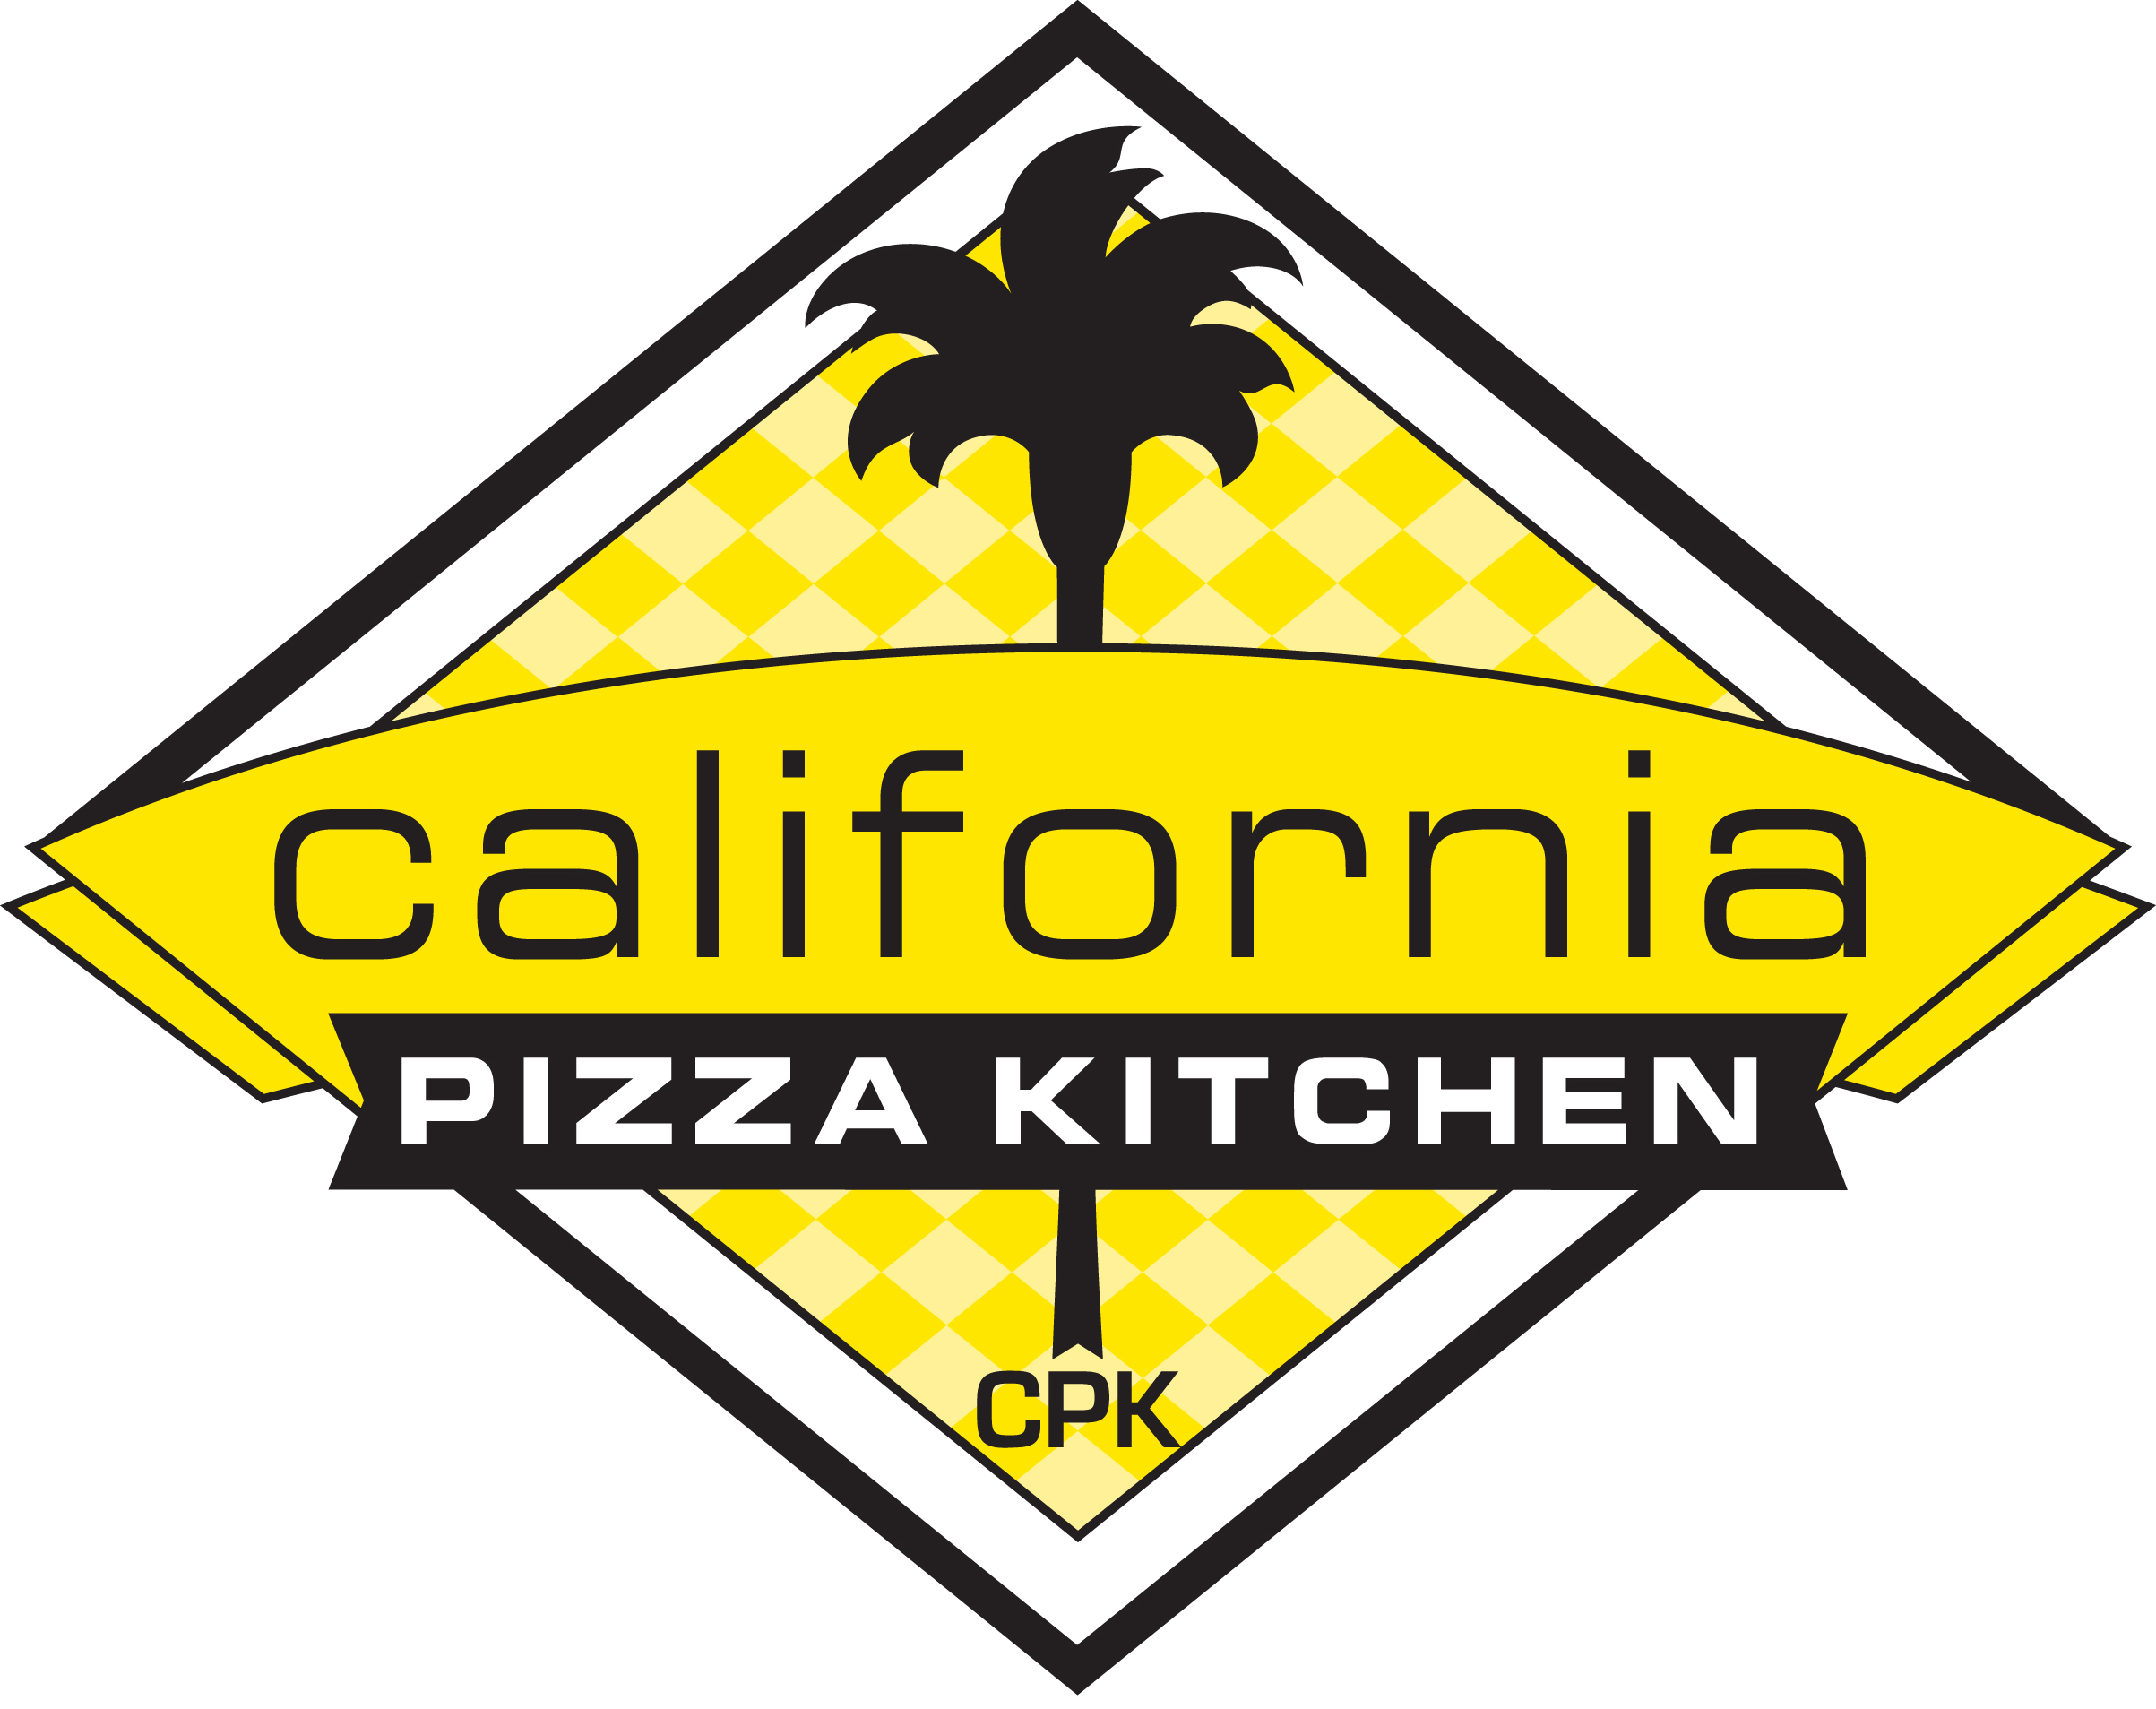 california pizza kitchen is officially moving their headquarters to rh mdrcondos com california pizza kitchen application status california pizza kitchen app